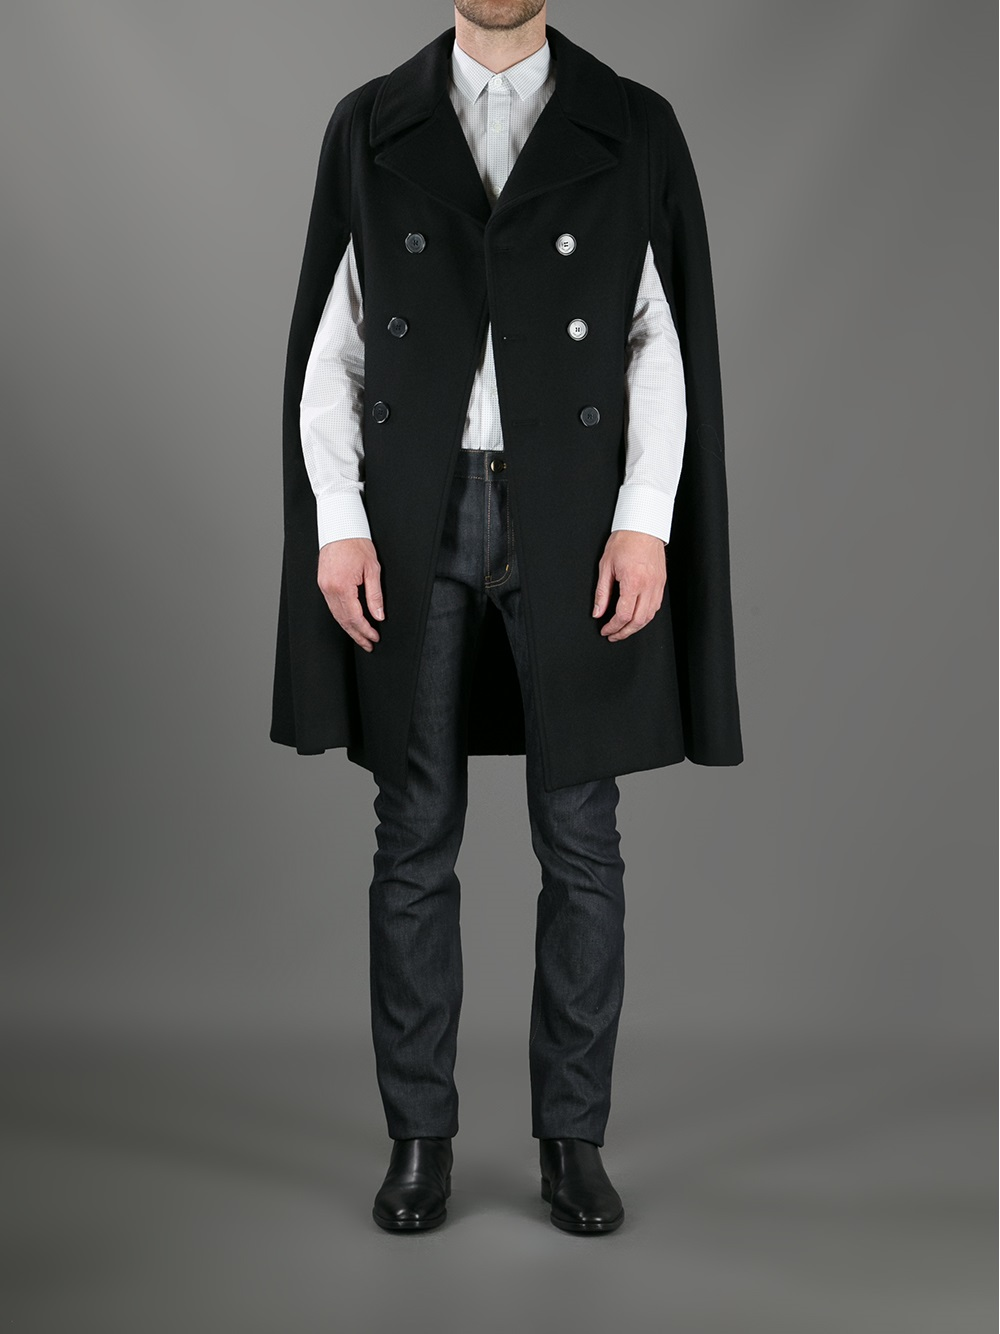 b1fdd4347ce Saint Laurent Double Breasted Cape Coat in Black for Men - Lyst